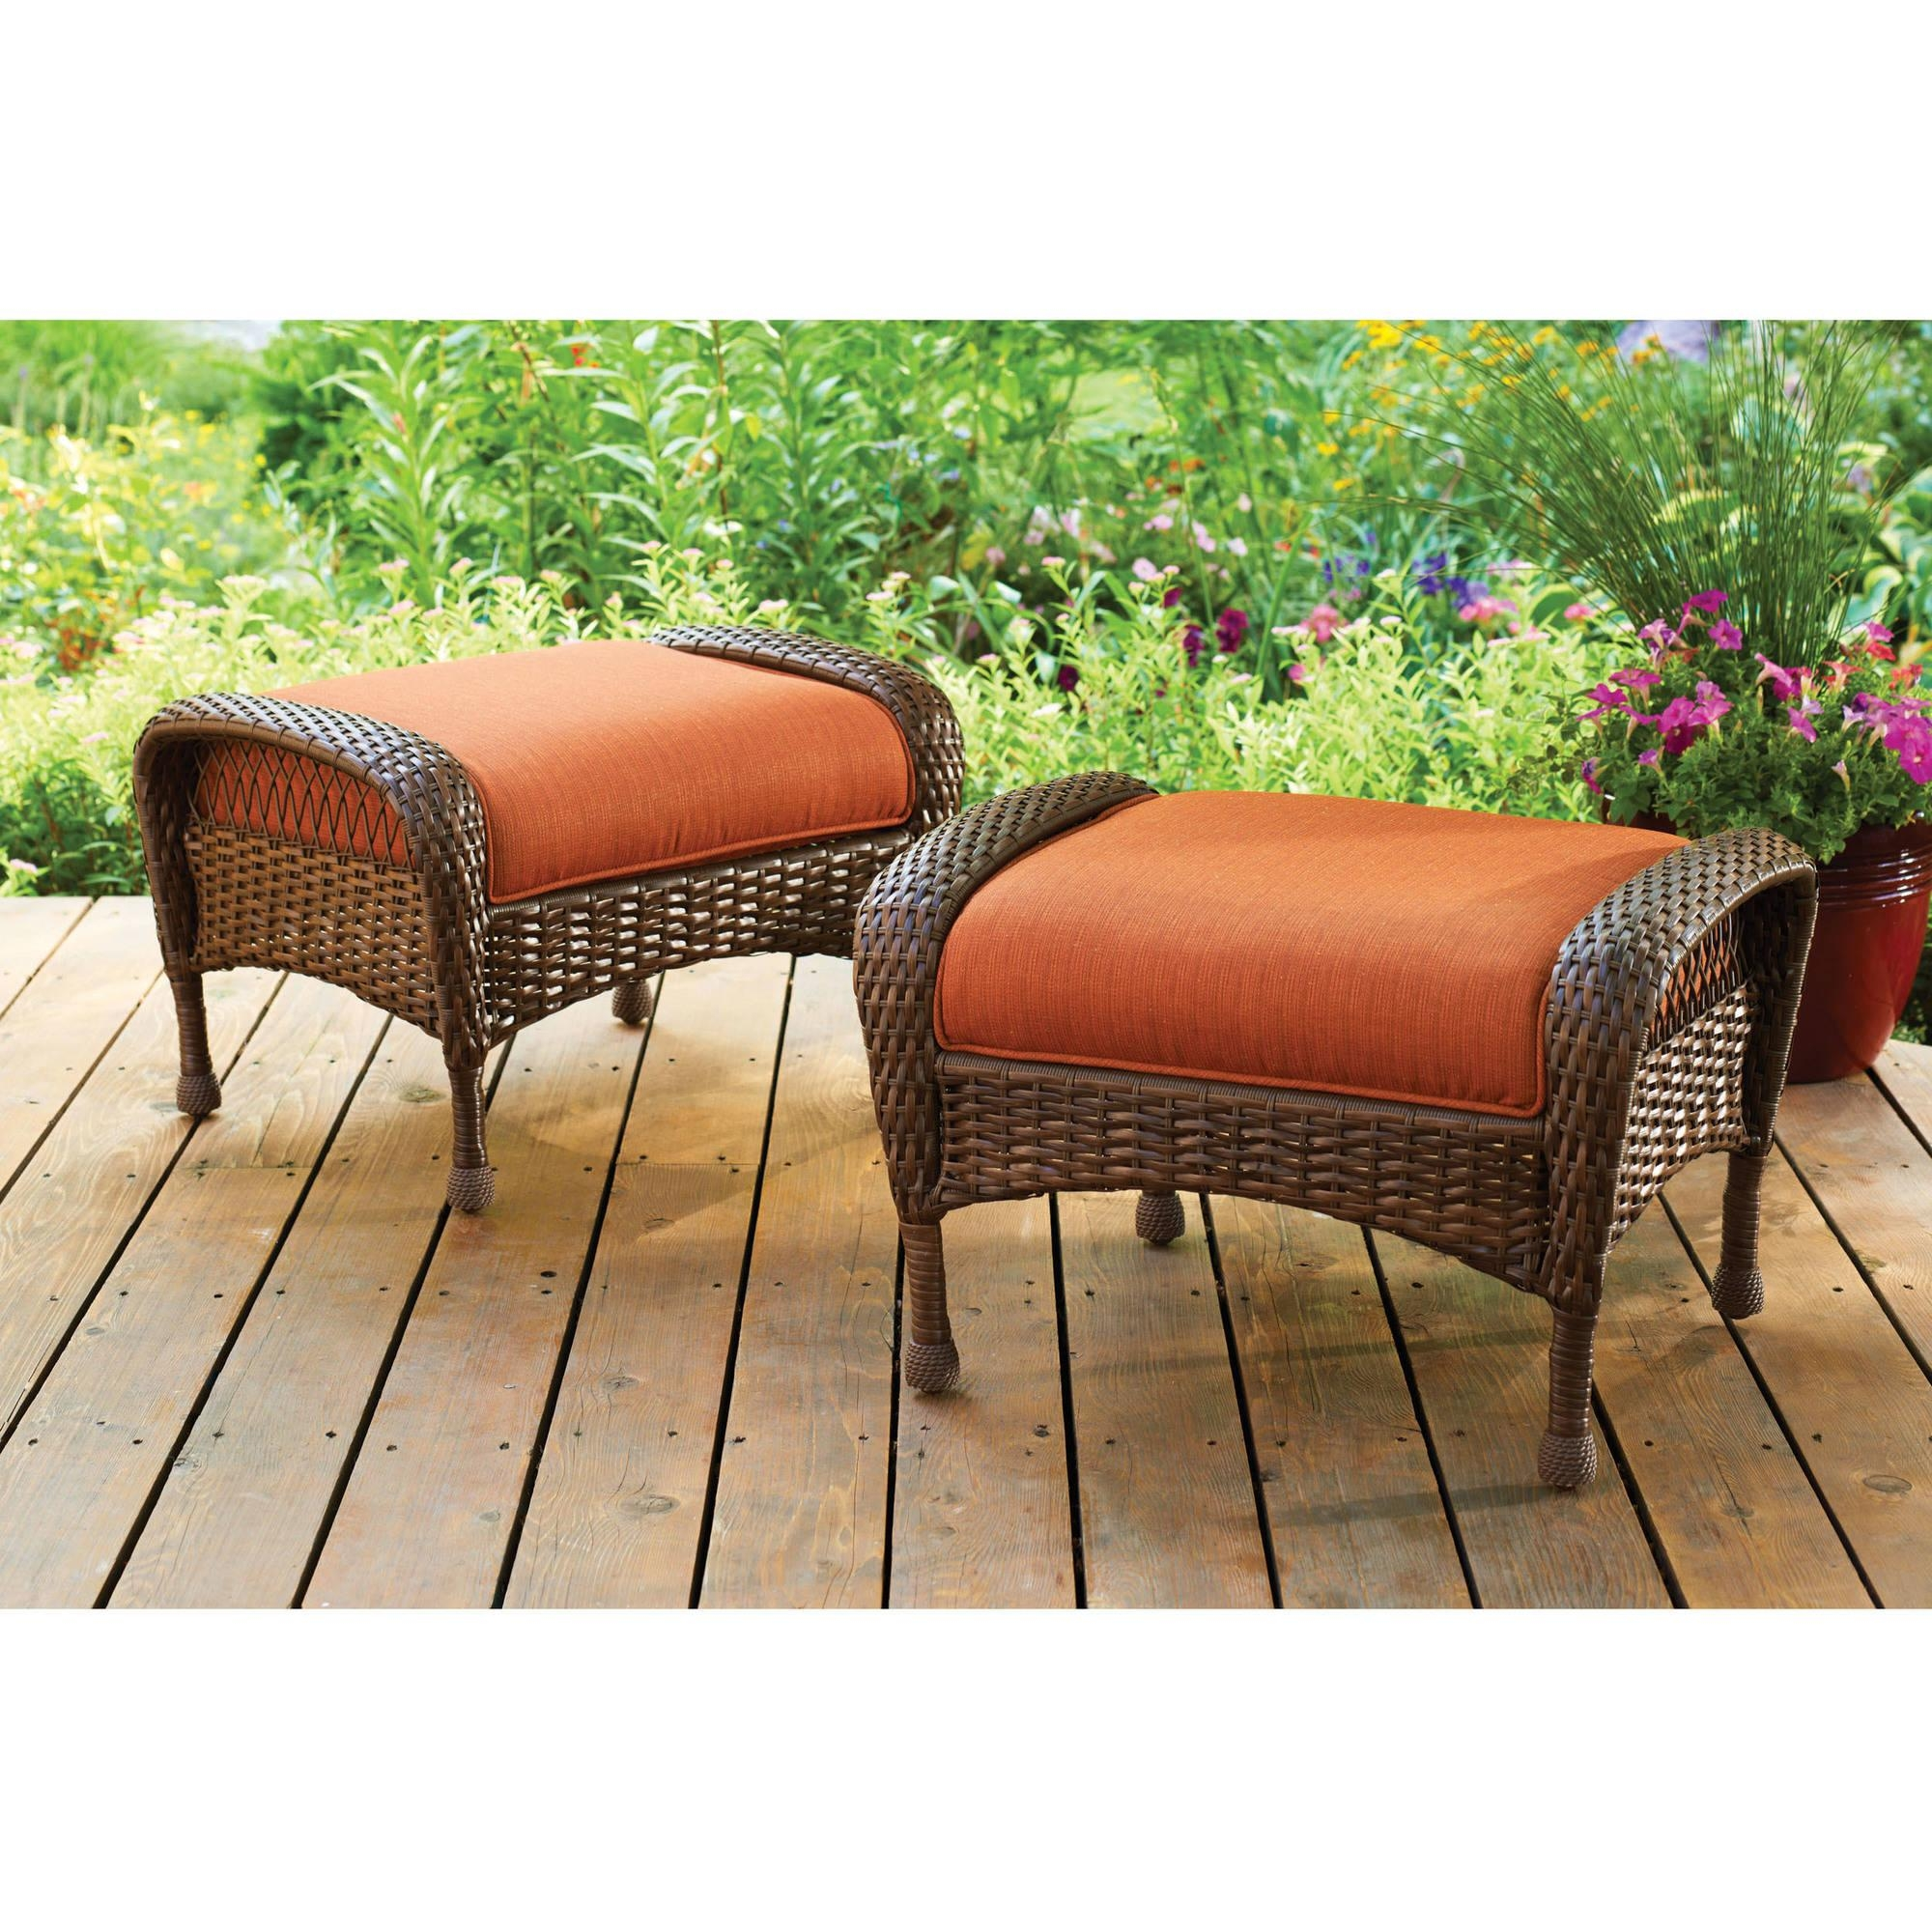 Patio Furniture – Walmart In Patio Sofa Tables (View 13 of 20)